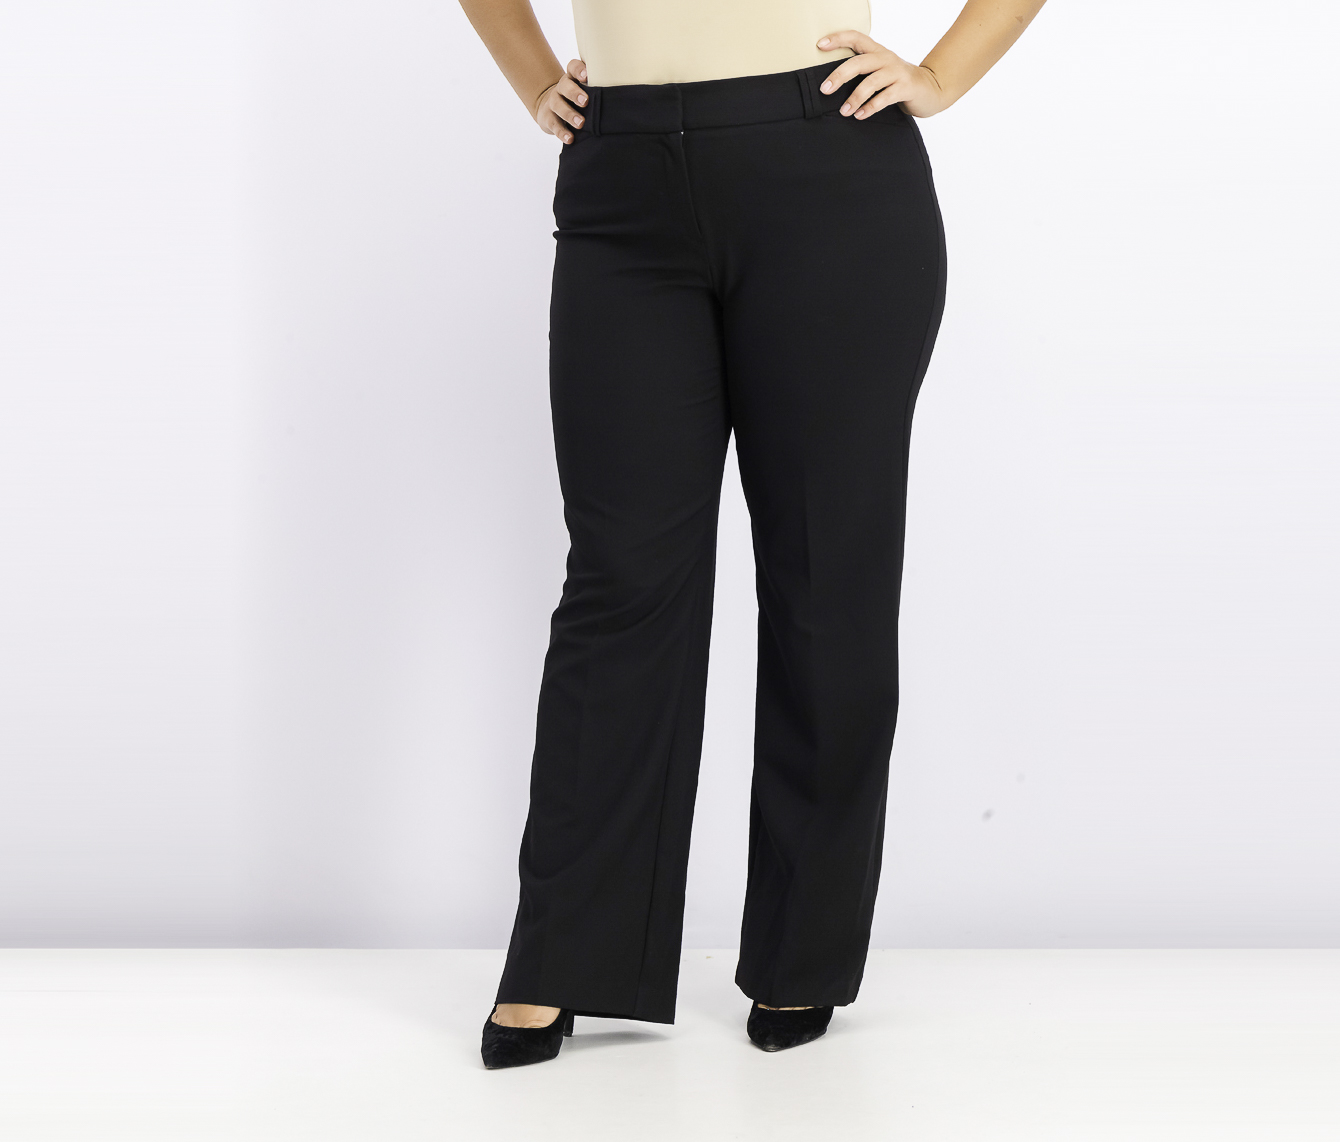 Womens Curvy Bootcut Pants, Black